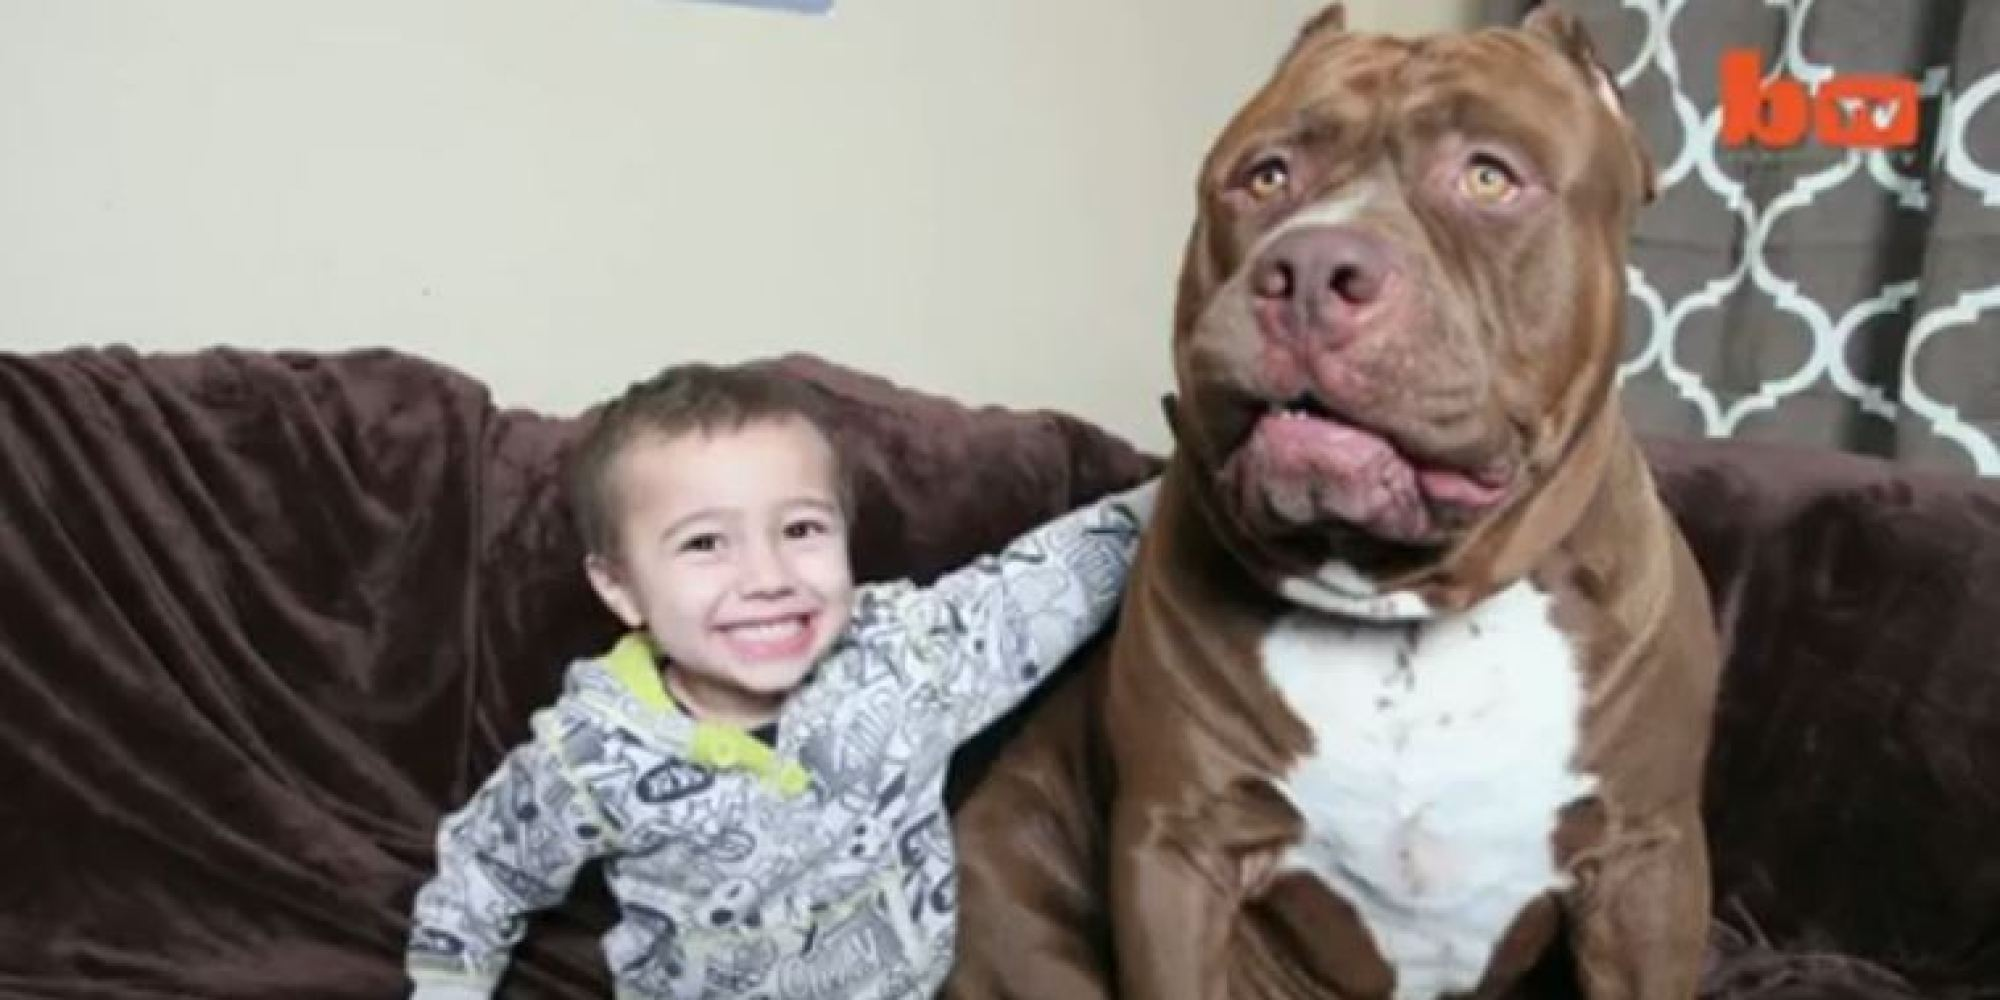 Hulk The Pit Bull Is 175 Pounds (VIDEO)